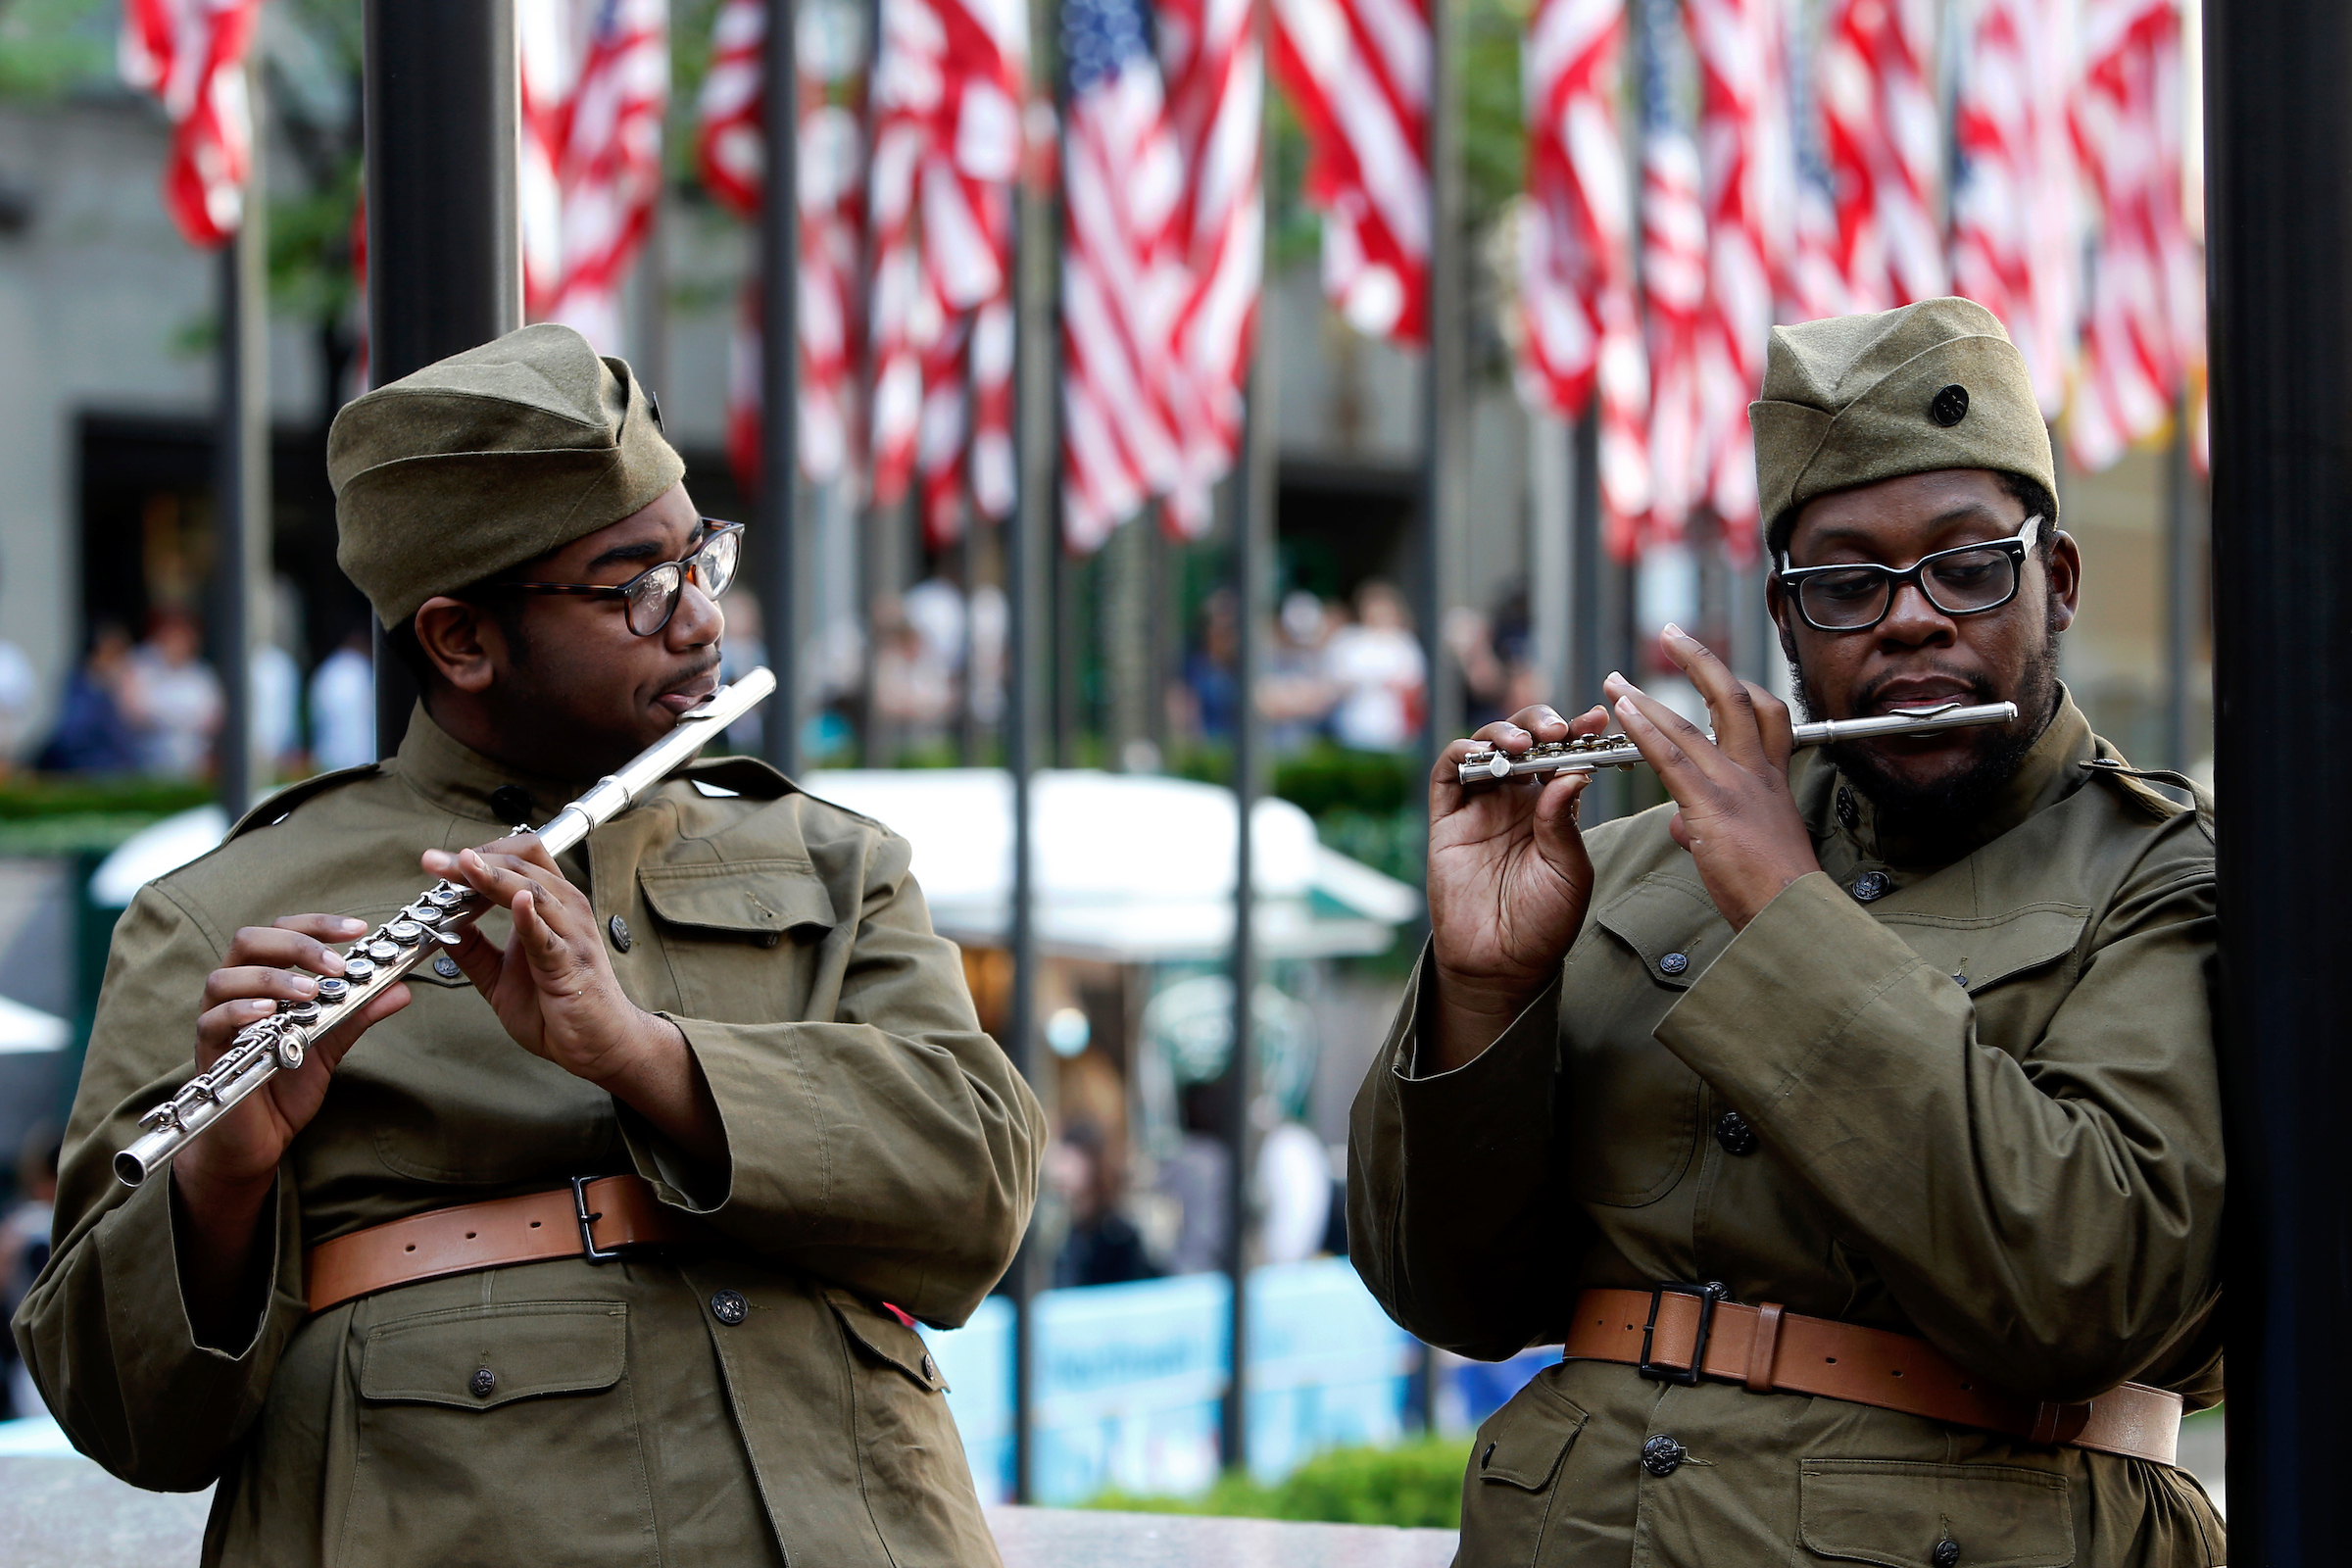 """The 369th Experience, a WWI tribute band sponsored by the U.S WWI Centennial Commission, performs in Rockefeller Center during Fleet Week New York, which this year is commemorating WWI, Saturday, May 25, 2019, in New York. The band, which is made up of music students from Historically Black Colleges and Universities across the U.S., play the musical repertoire of New York's legendary 369th Regiment """"Harlem Hellfighters"""" Regimental Jazz Band. (Jason DeCrow/AP Images for U.S. WWI Centennial Commission)"""